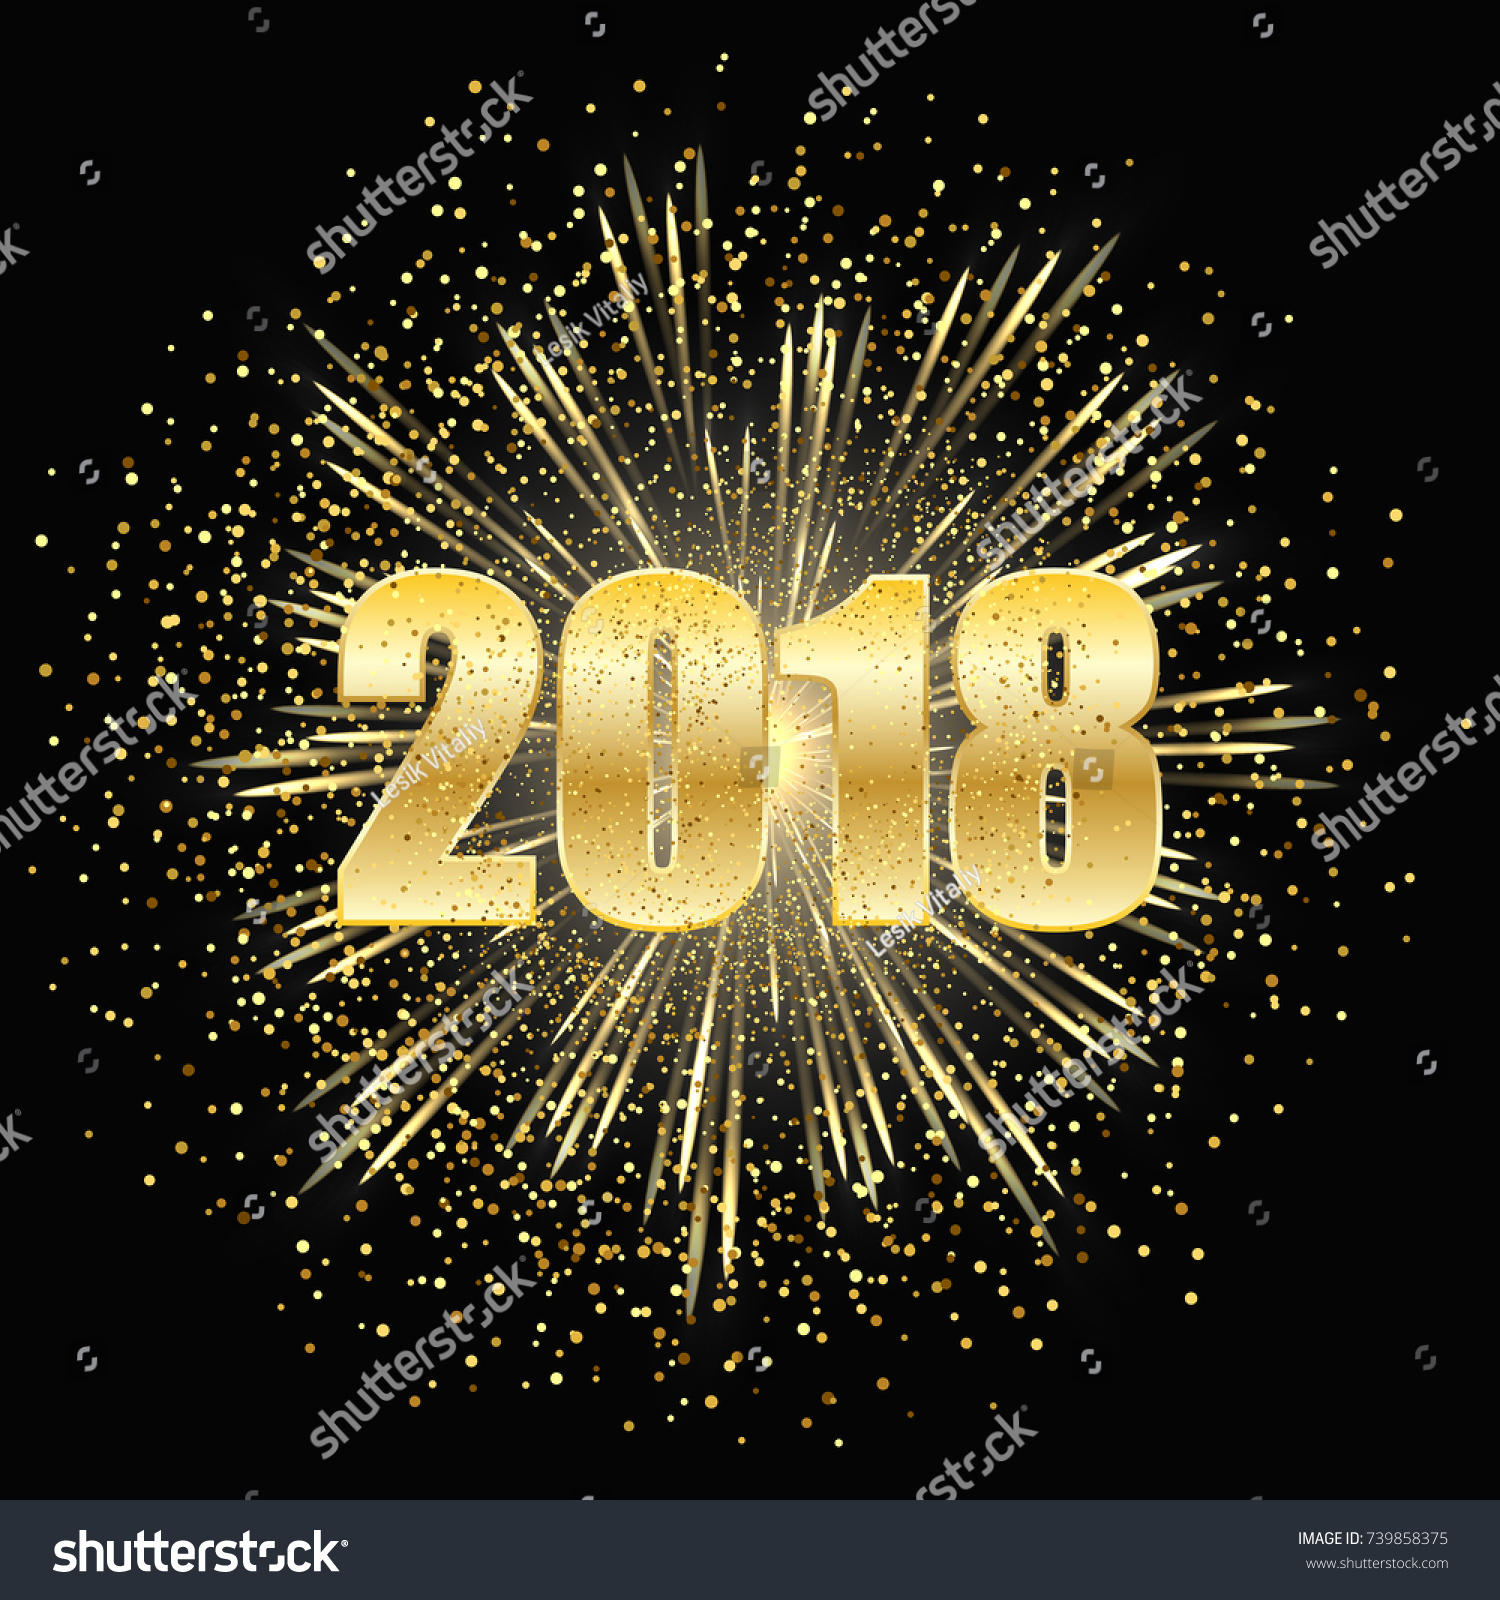 christmas and new year dark background fireworks with gold particles and figures 2018